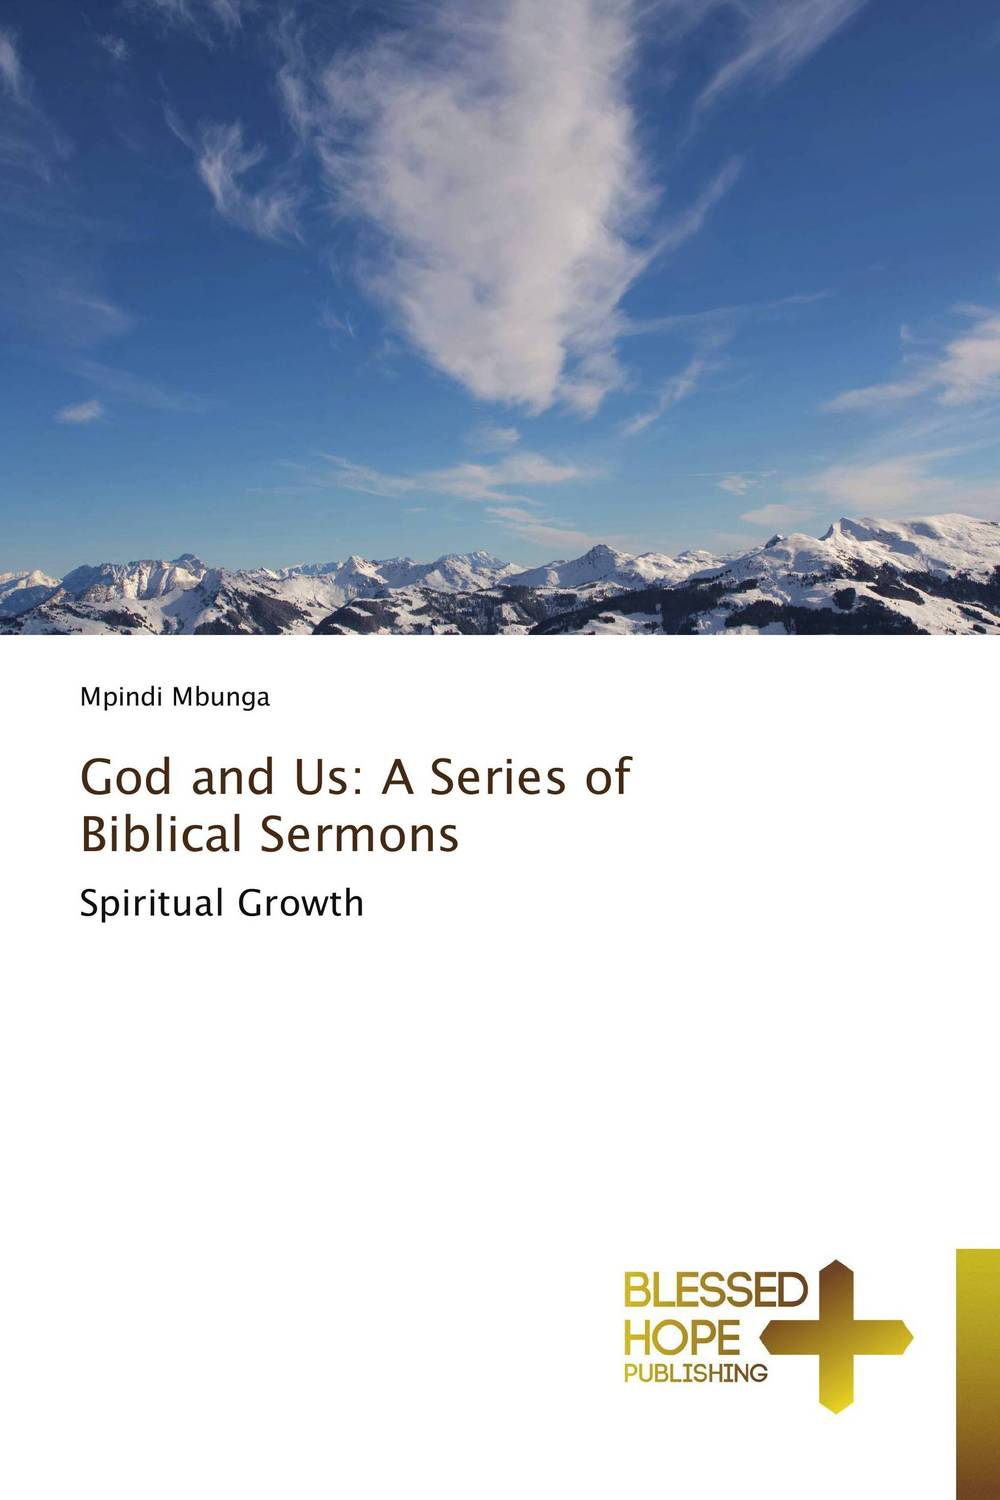 God and Us: A Series of Biblical Sermons god is at work